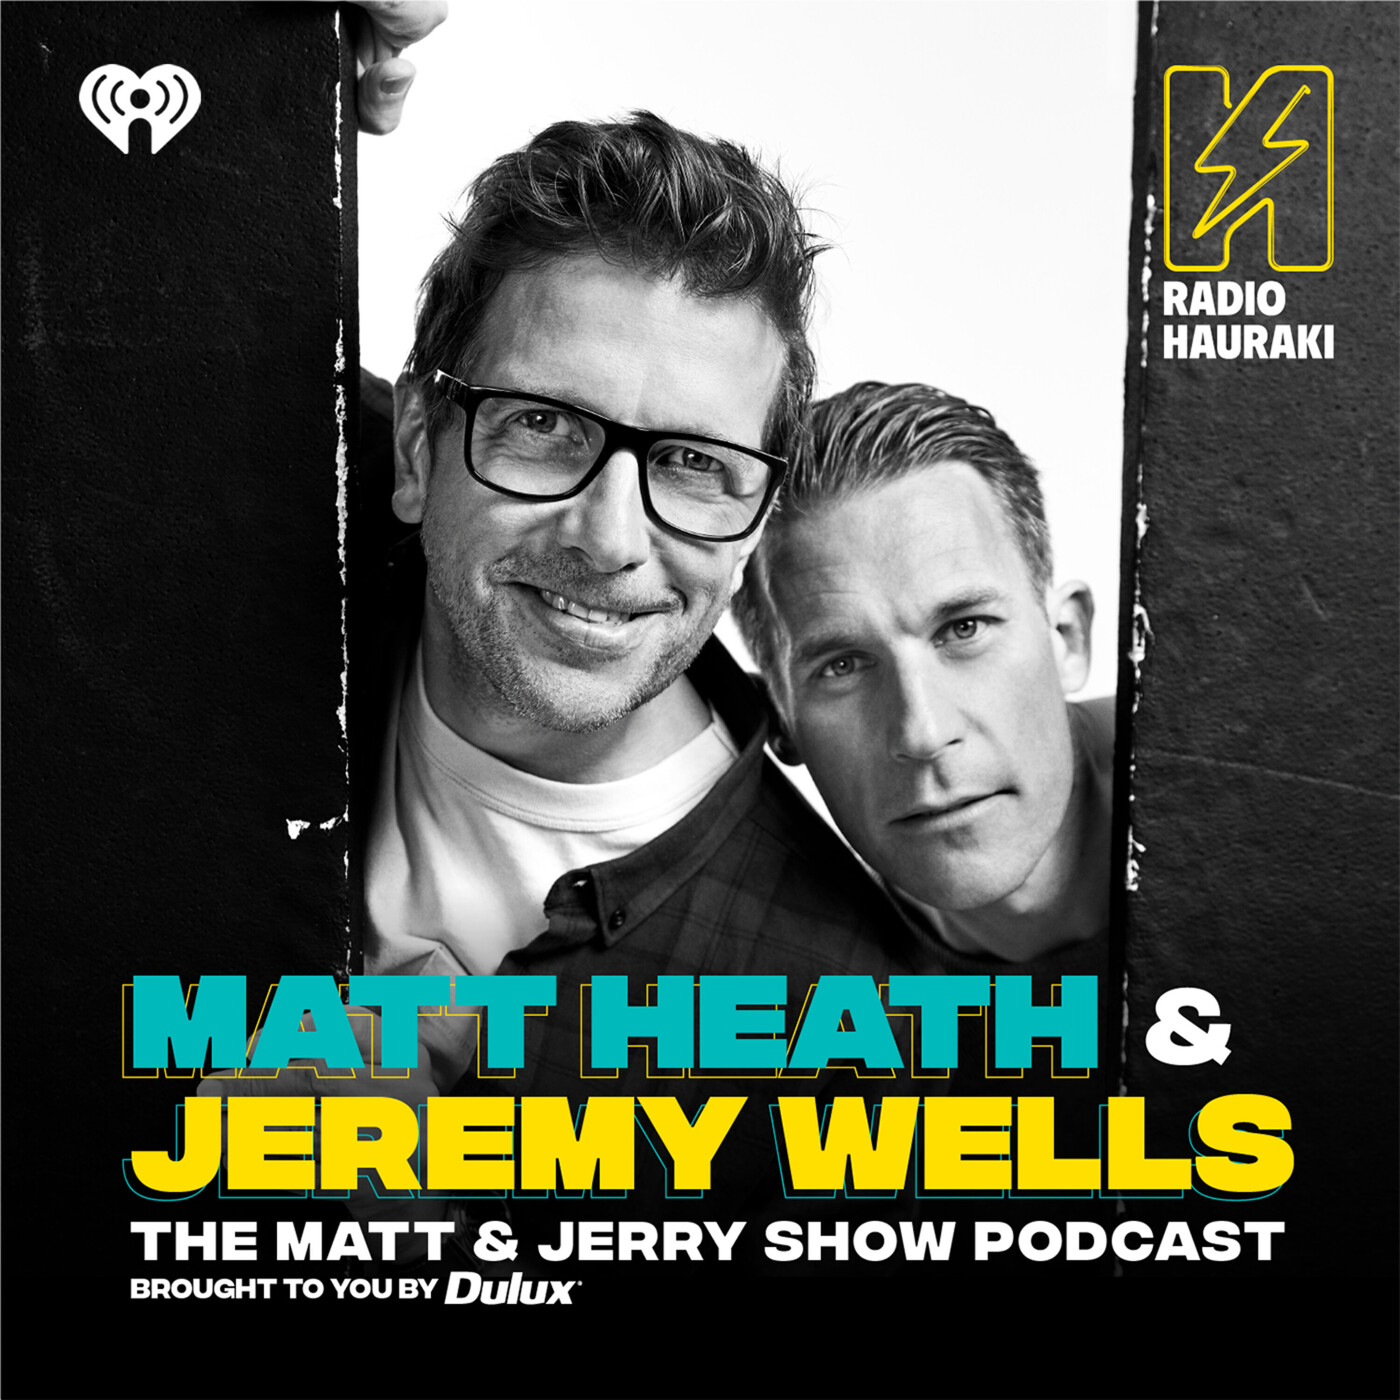 Oct 21 - Jerry's Melons, Listener Feedback & Why Doesn't Your Stomach Digest Your Stomach?